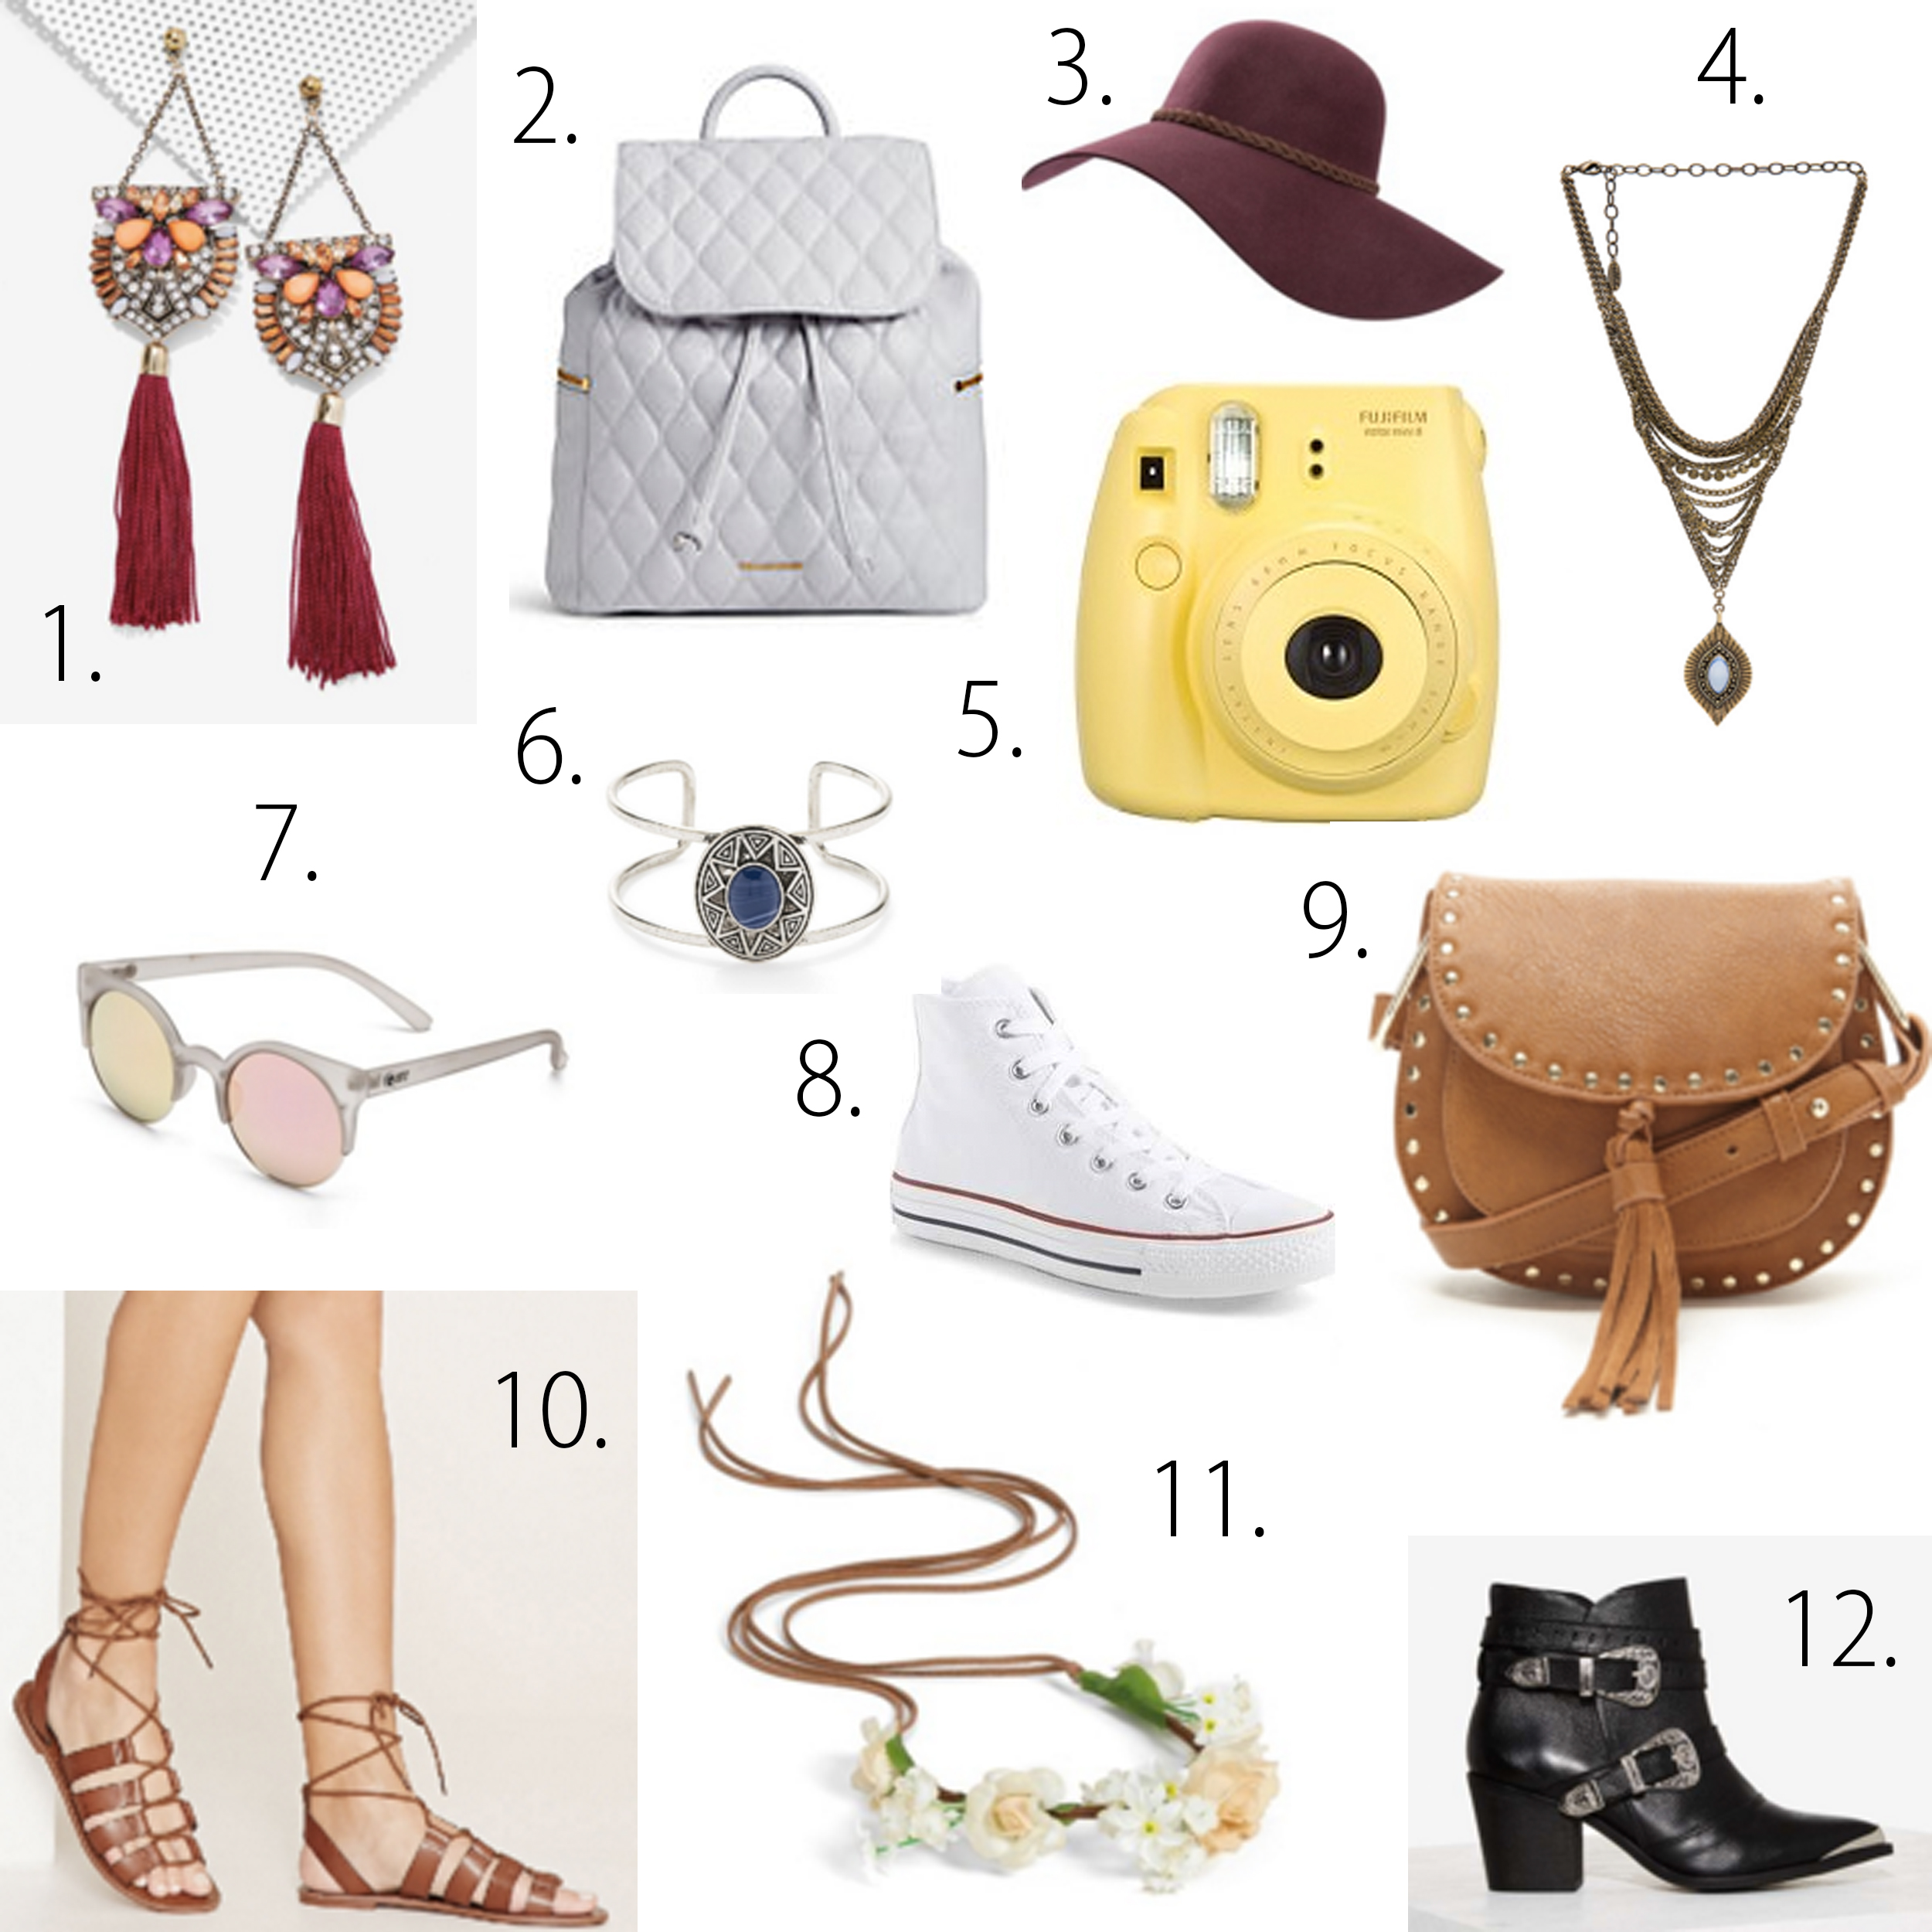 missyonmadison, coachella style, coachella picks, coachella style tips, coachella style roundup, festival style, festival picks, accessories for coachella, boho chic looks, boho chic outfit inspo, revolve clothing, floppy hat, fuji film, converse, vera bradley backpack, boho jewelry, lace up sandals, forever 21, fringe vest, cold shoulder dress, romper, quay australia sunglasses, what to pack for coachella, coachella packing guide, what to wear in palm springs, palm desert, coachella vibes, booties, flower crown, flower headband,